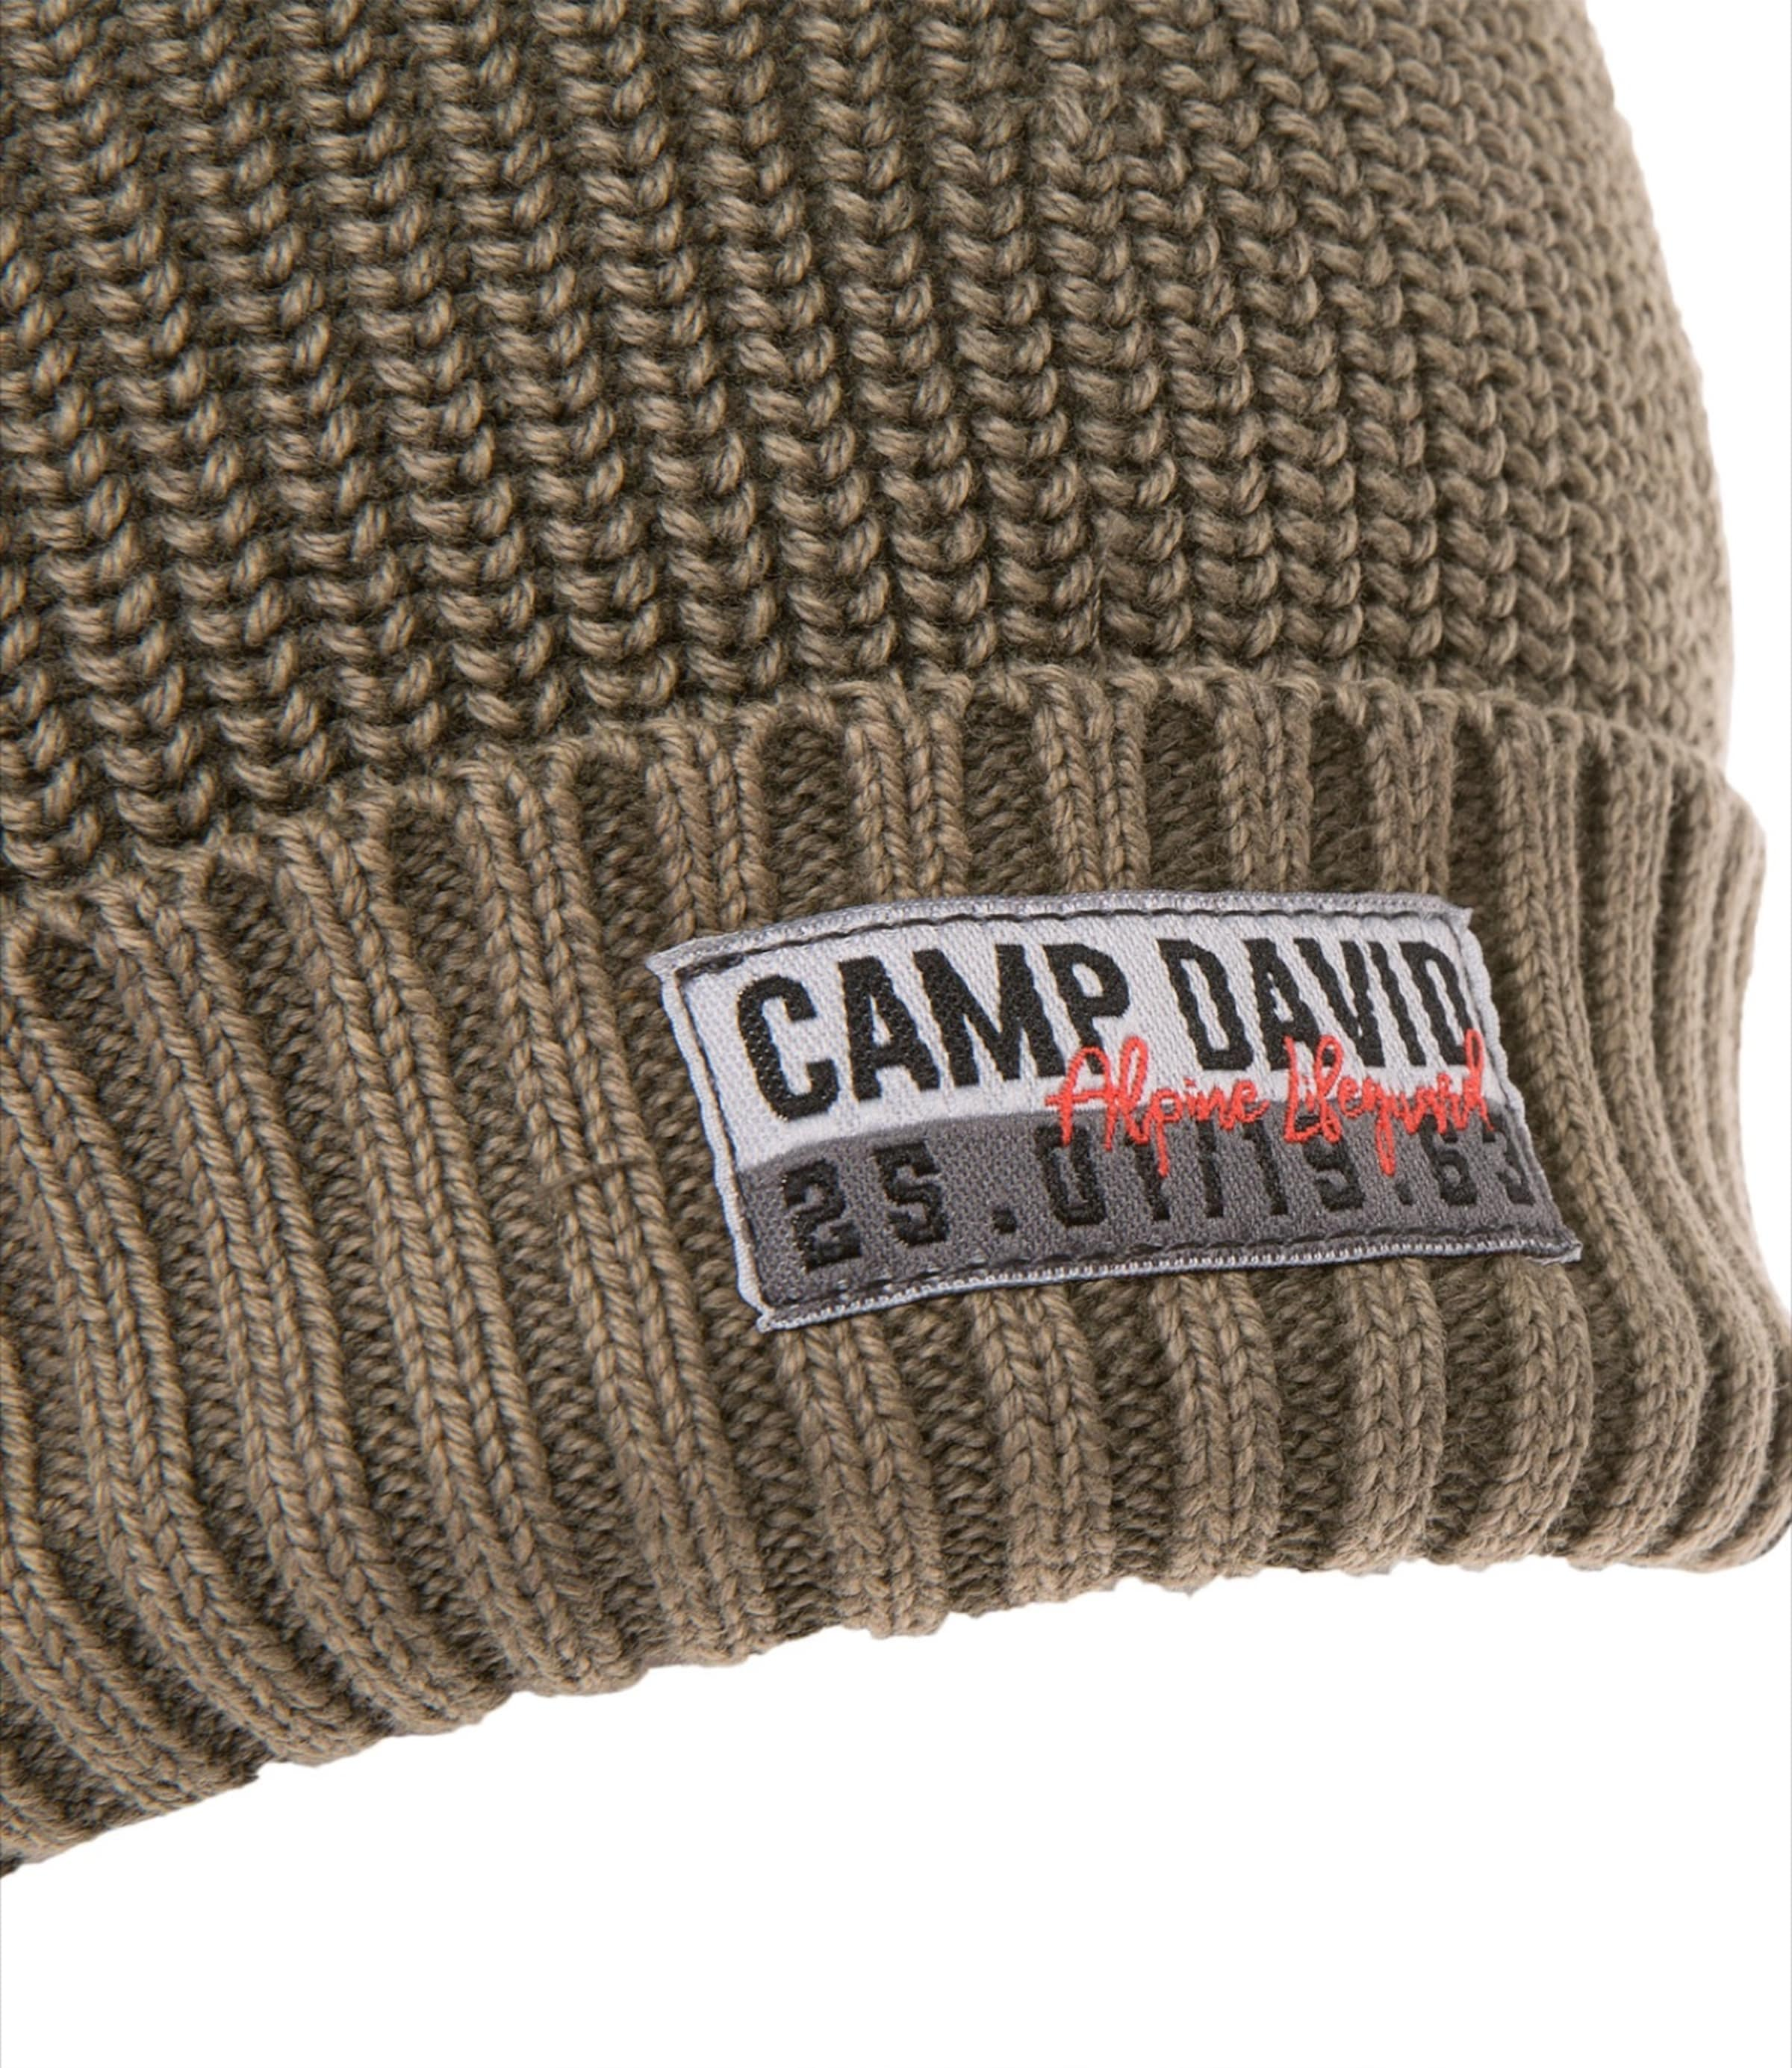 Camp David Camp David Strickmütze Camp Grün Strickmütze In In Grün 5Rc3qjL4A